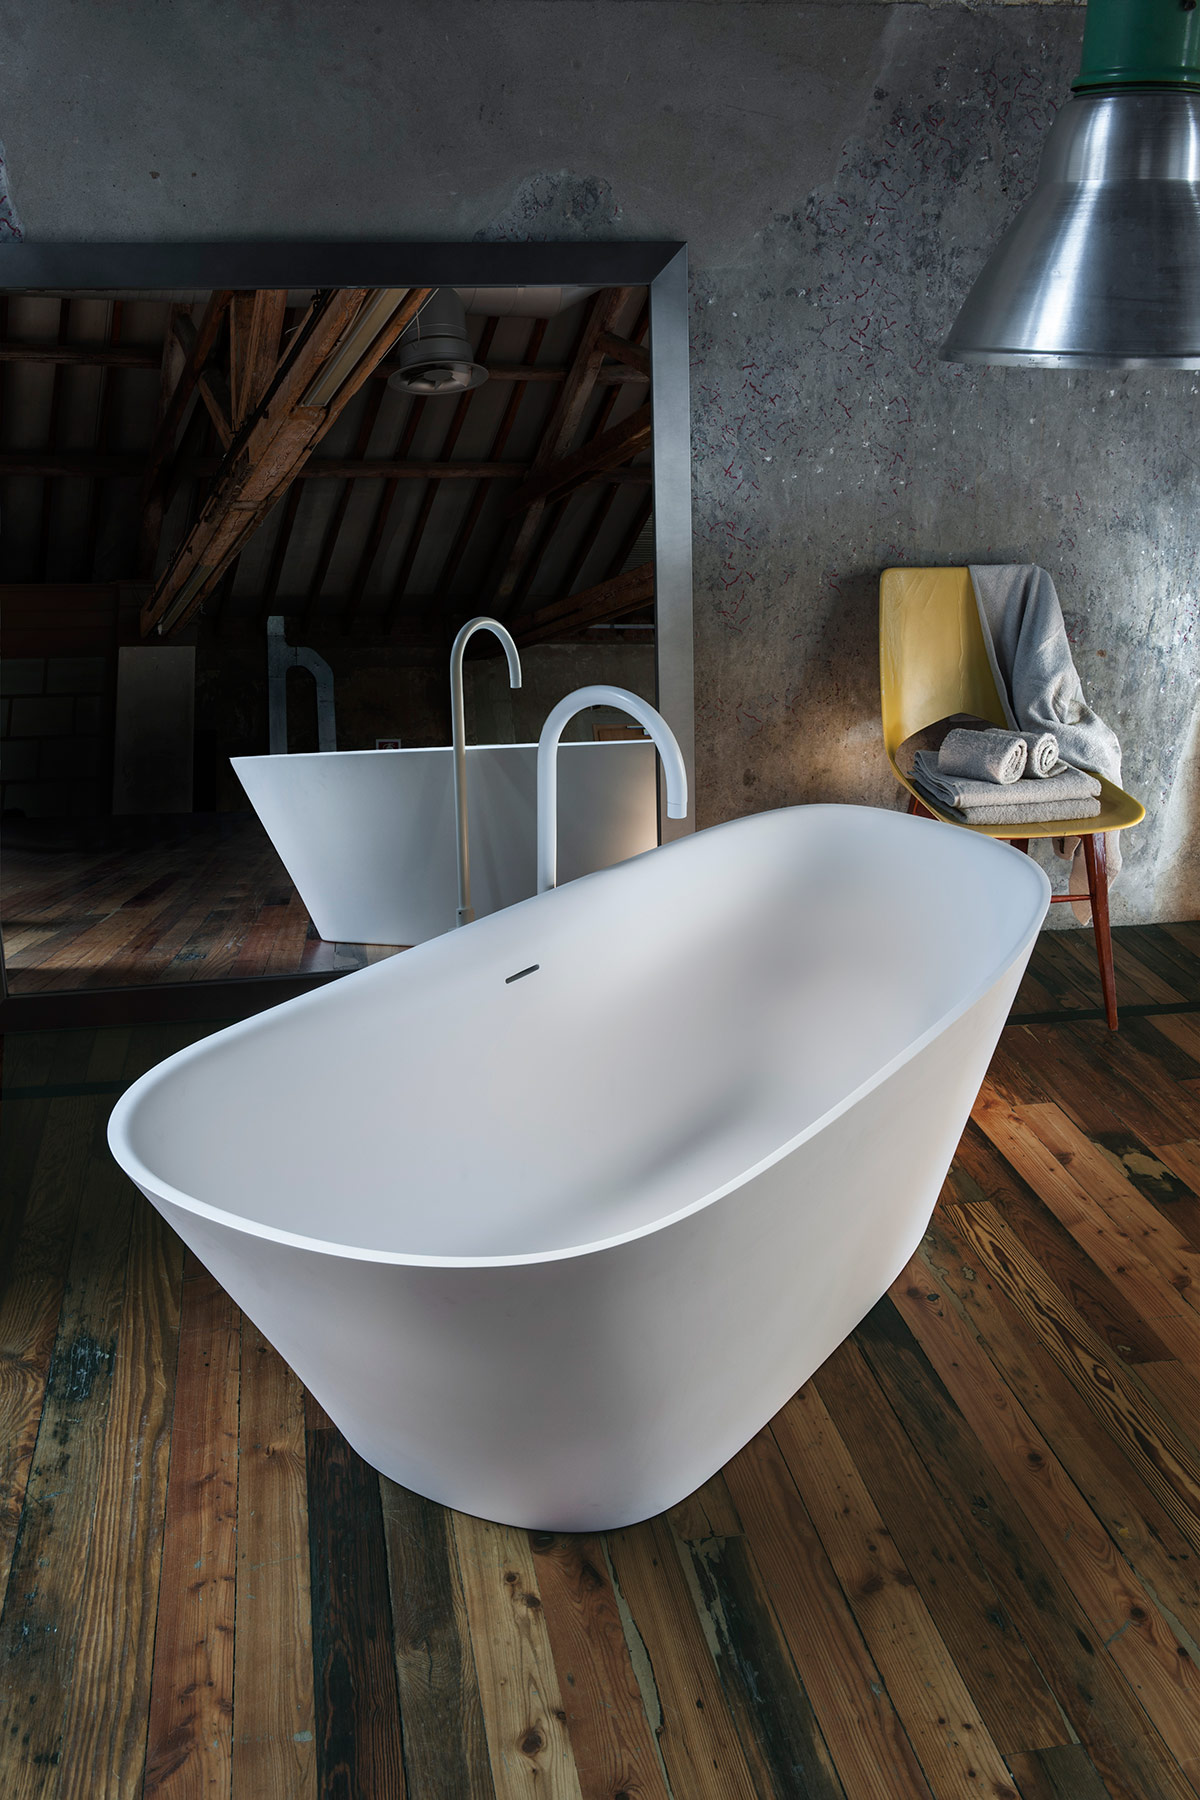 Transitional Level 45 Freestanding Bathtub